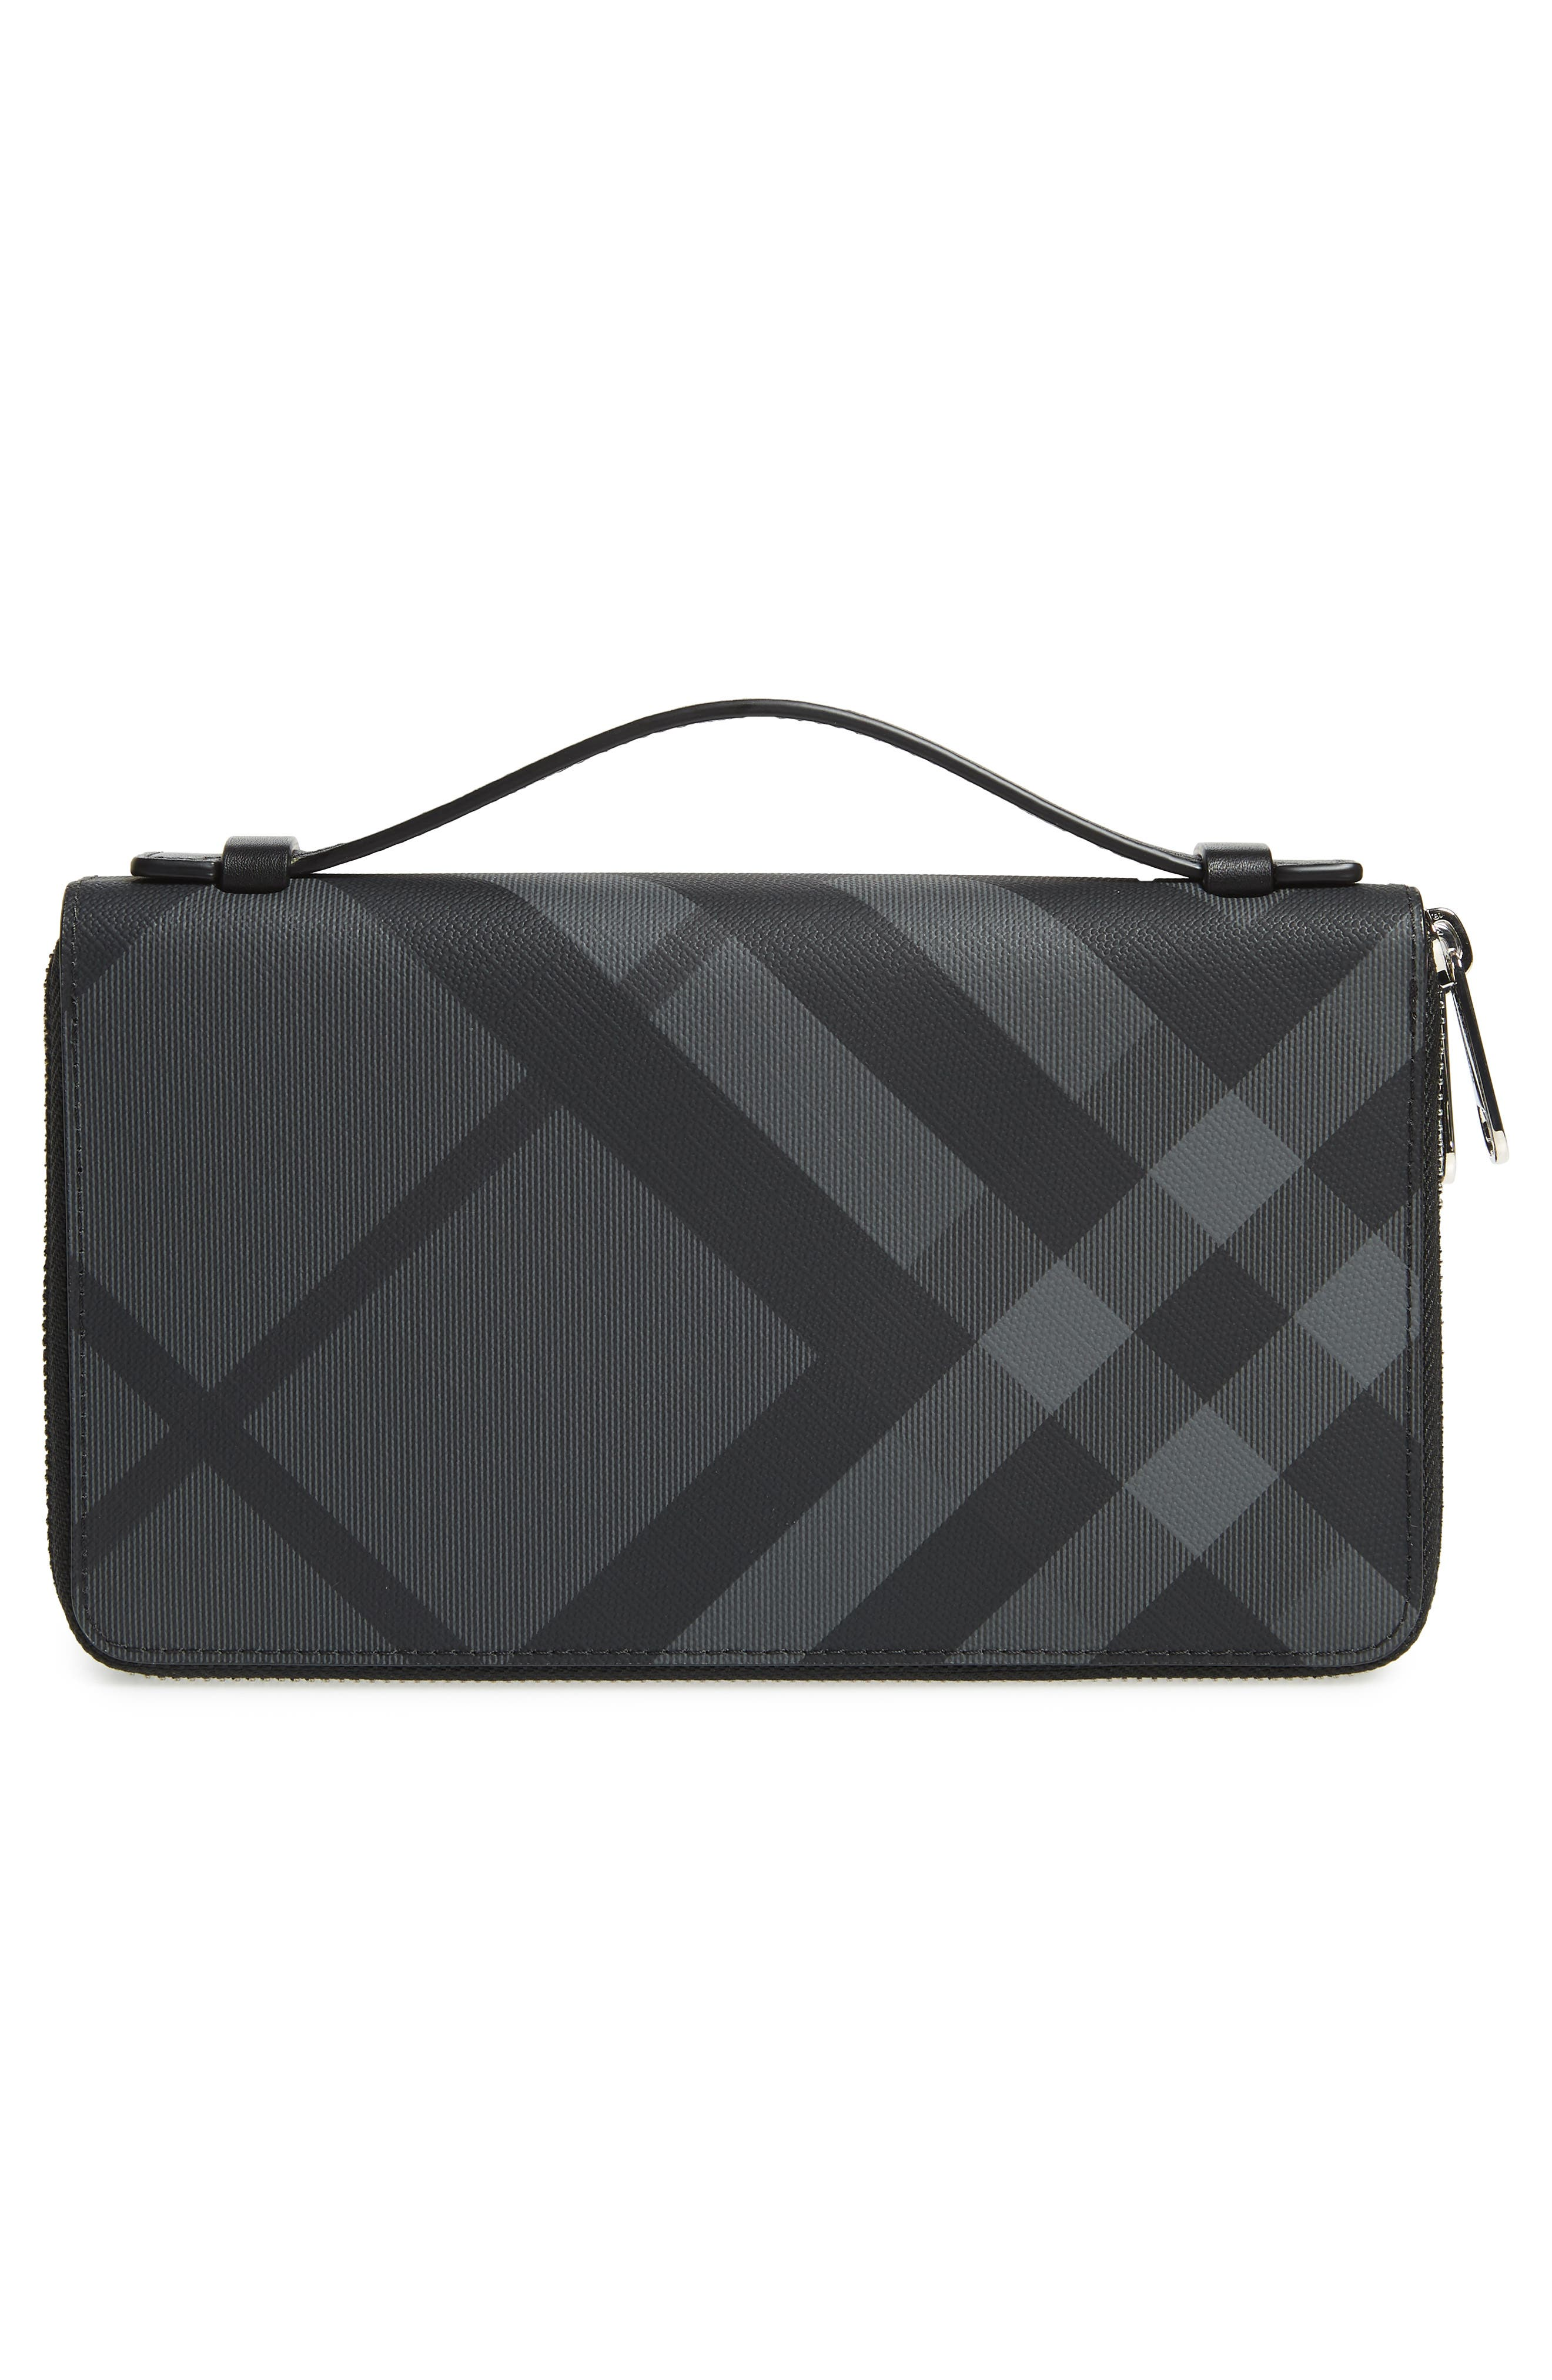 BURBERRY, Reeves Zip Wallet, Alternate thumbnail 2, color, CHARCOAL BLACK